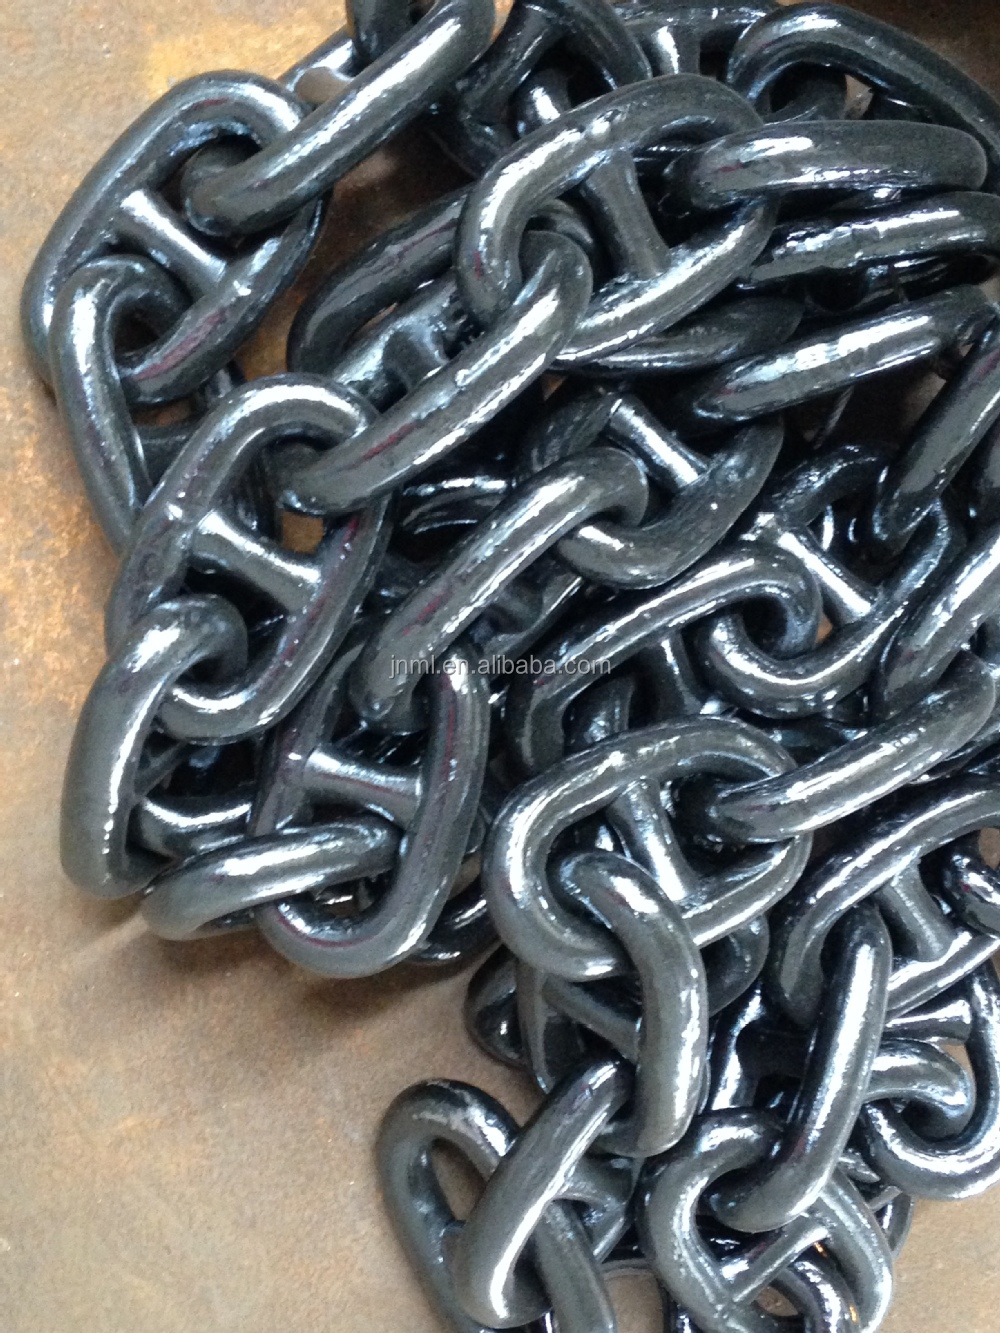 68mm 2-11/16 inch grade U2 galvanized chain ship steel welded chain stud link marine mooring anchor chain